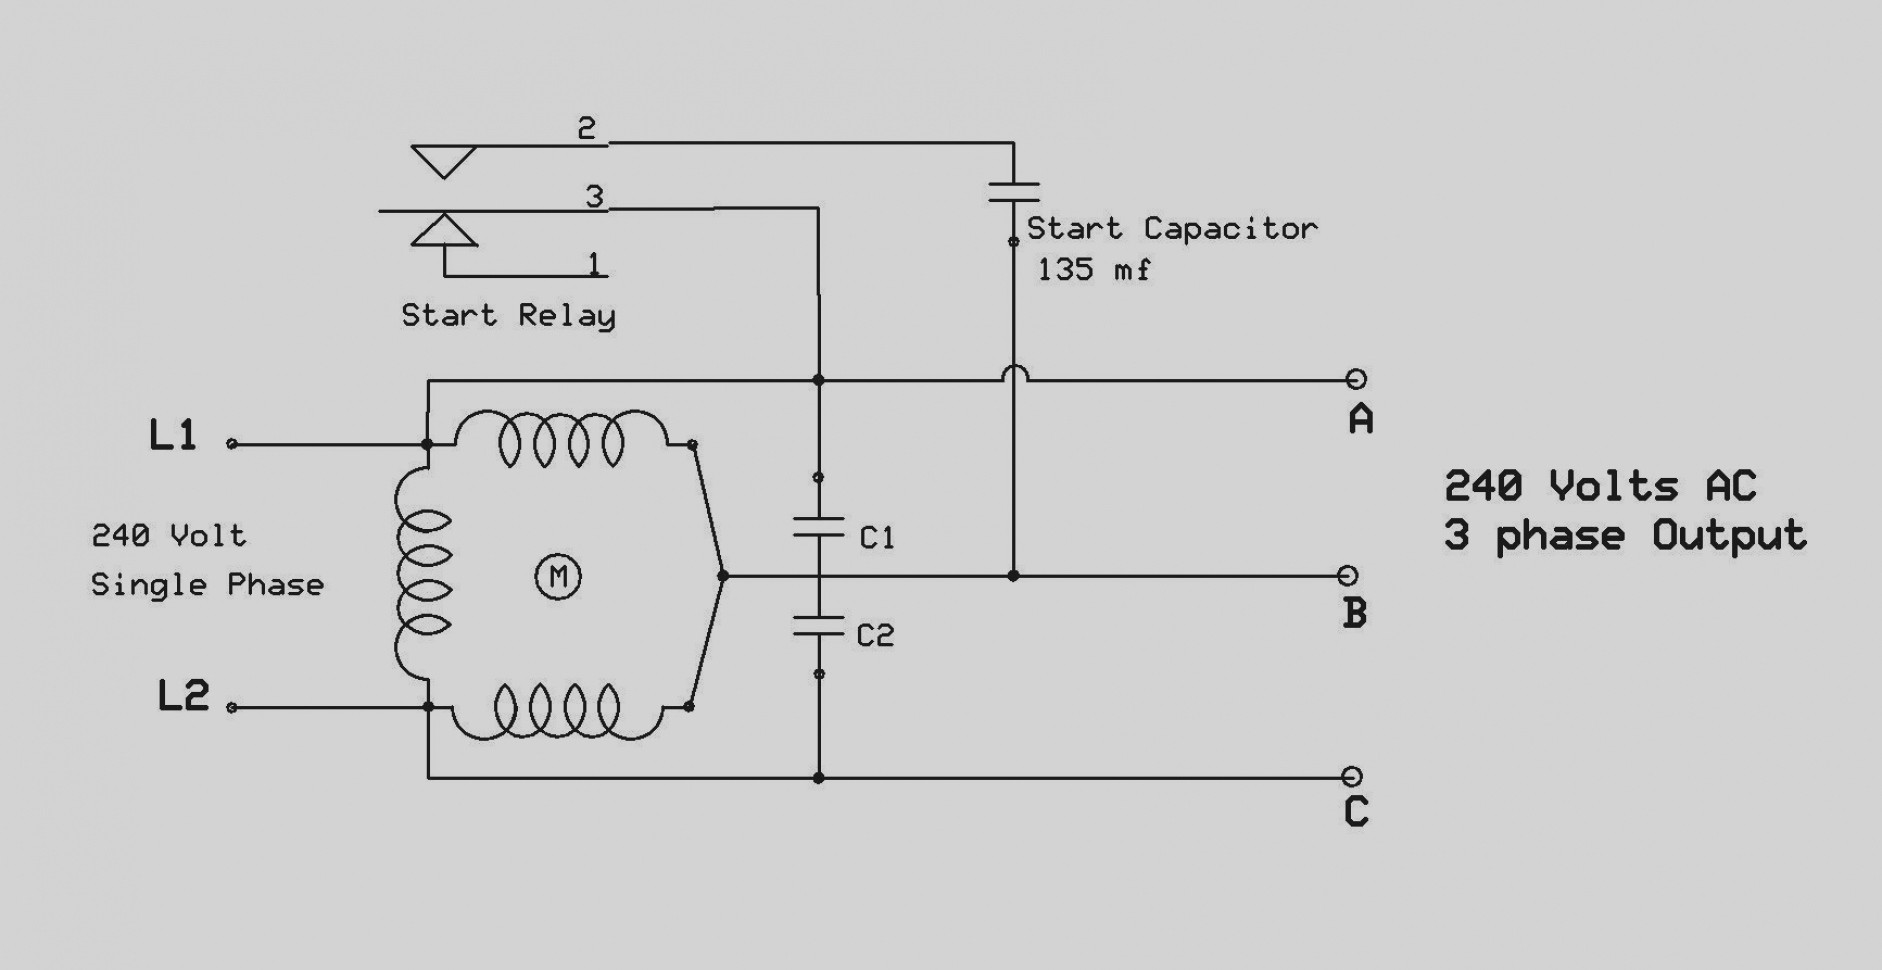 hight resolution of 240 single phase wiring diagram relay enthusiast wiring diagrams u2022 wiring diagram for 480 volt